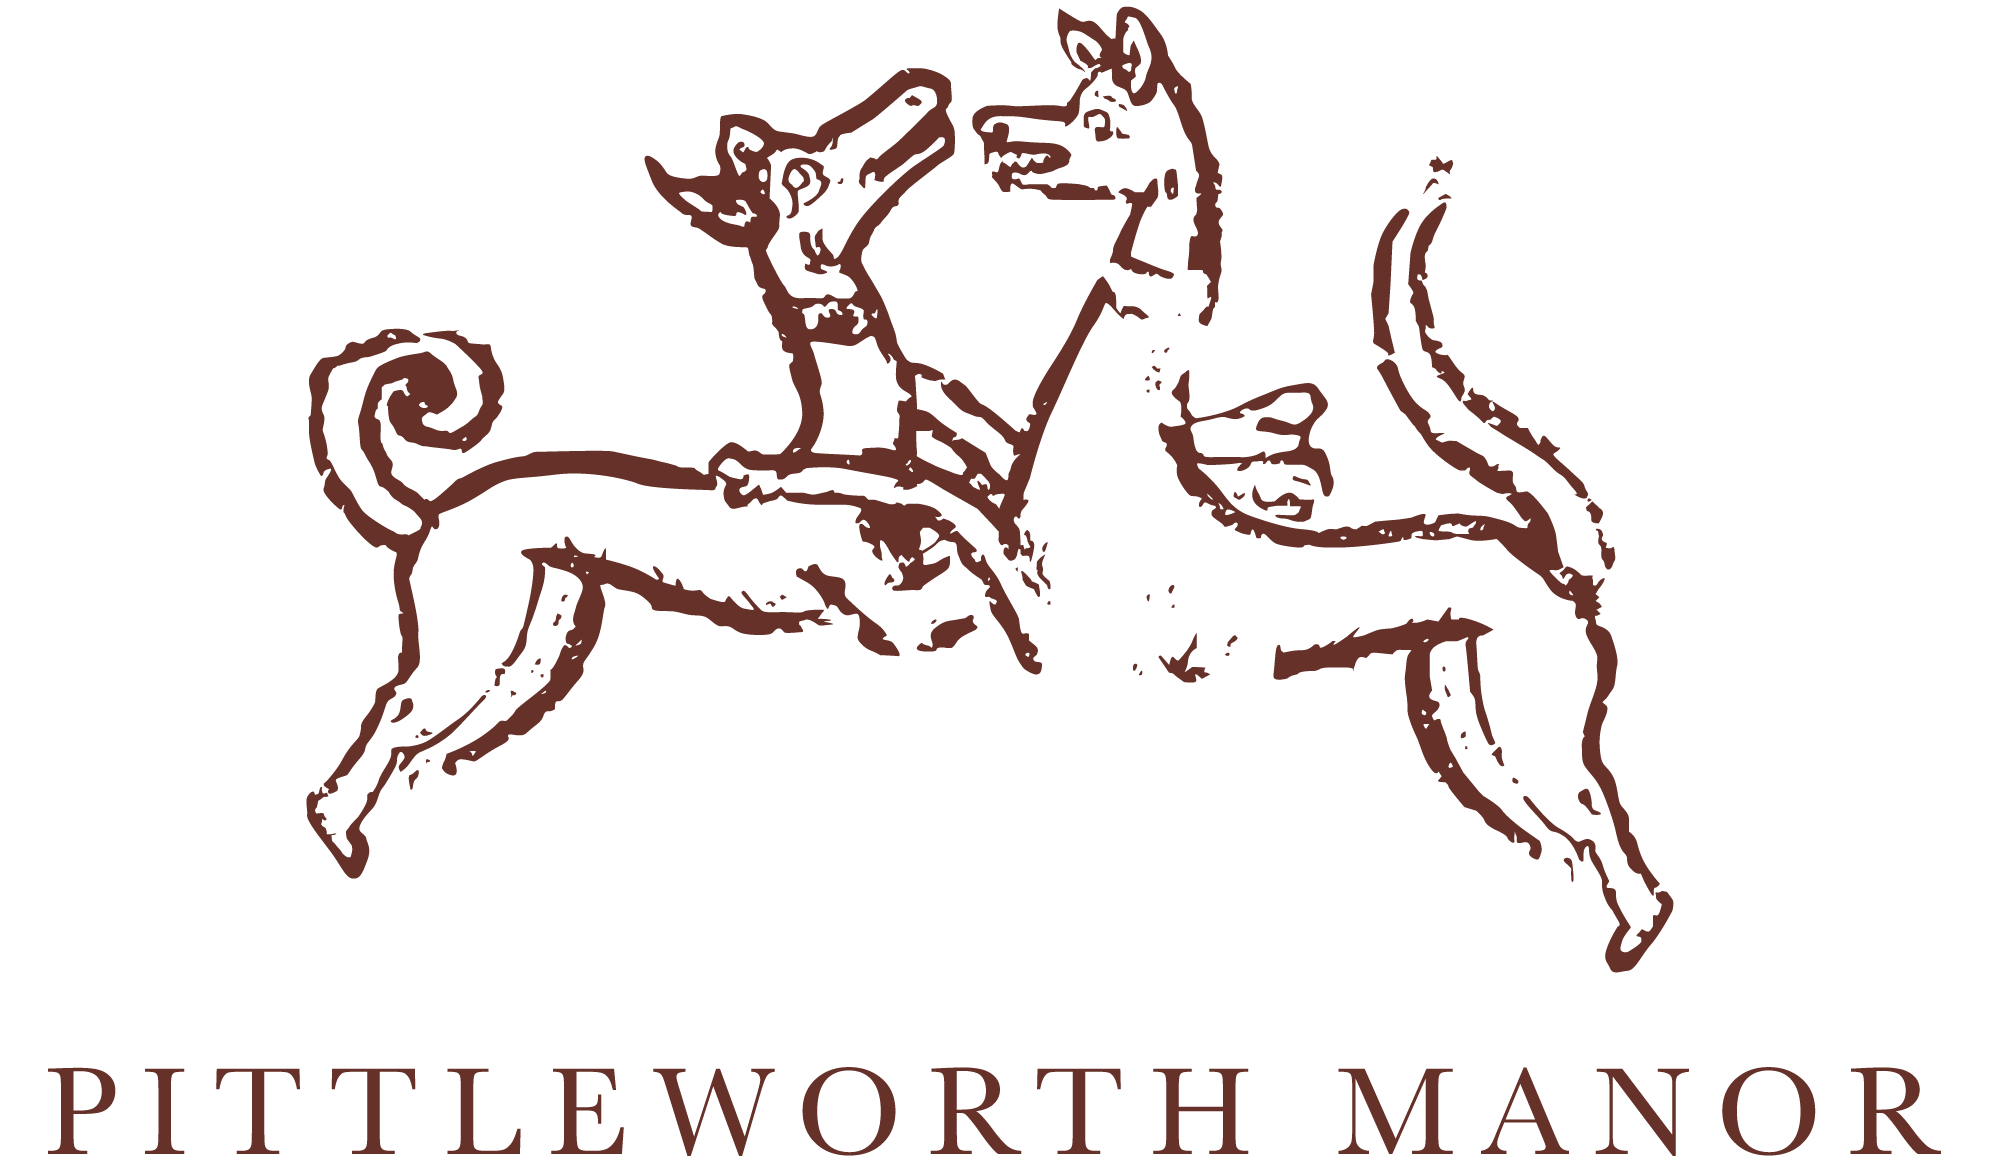 Pittleworth Manor